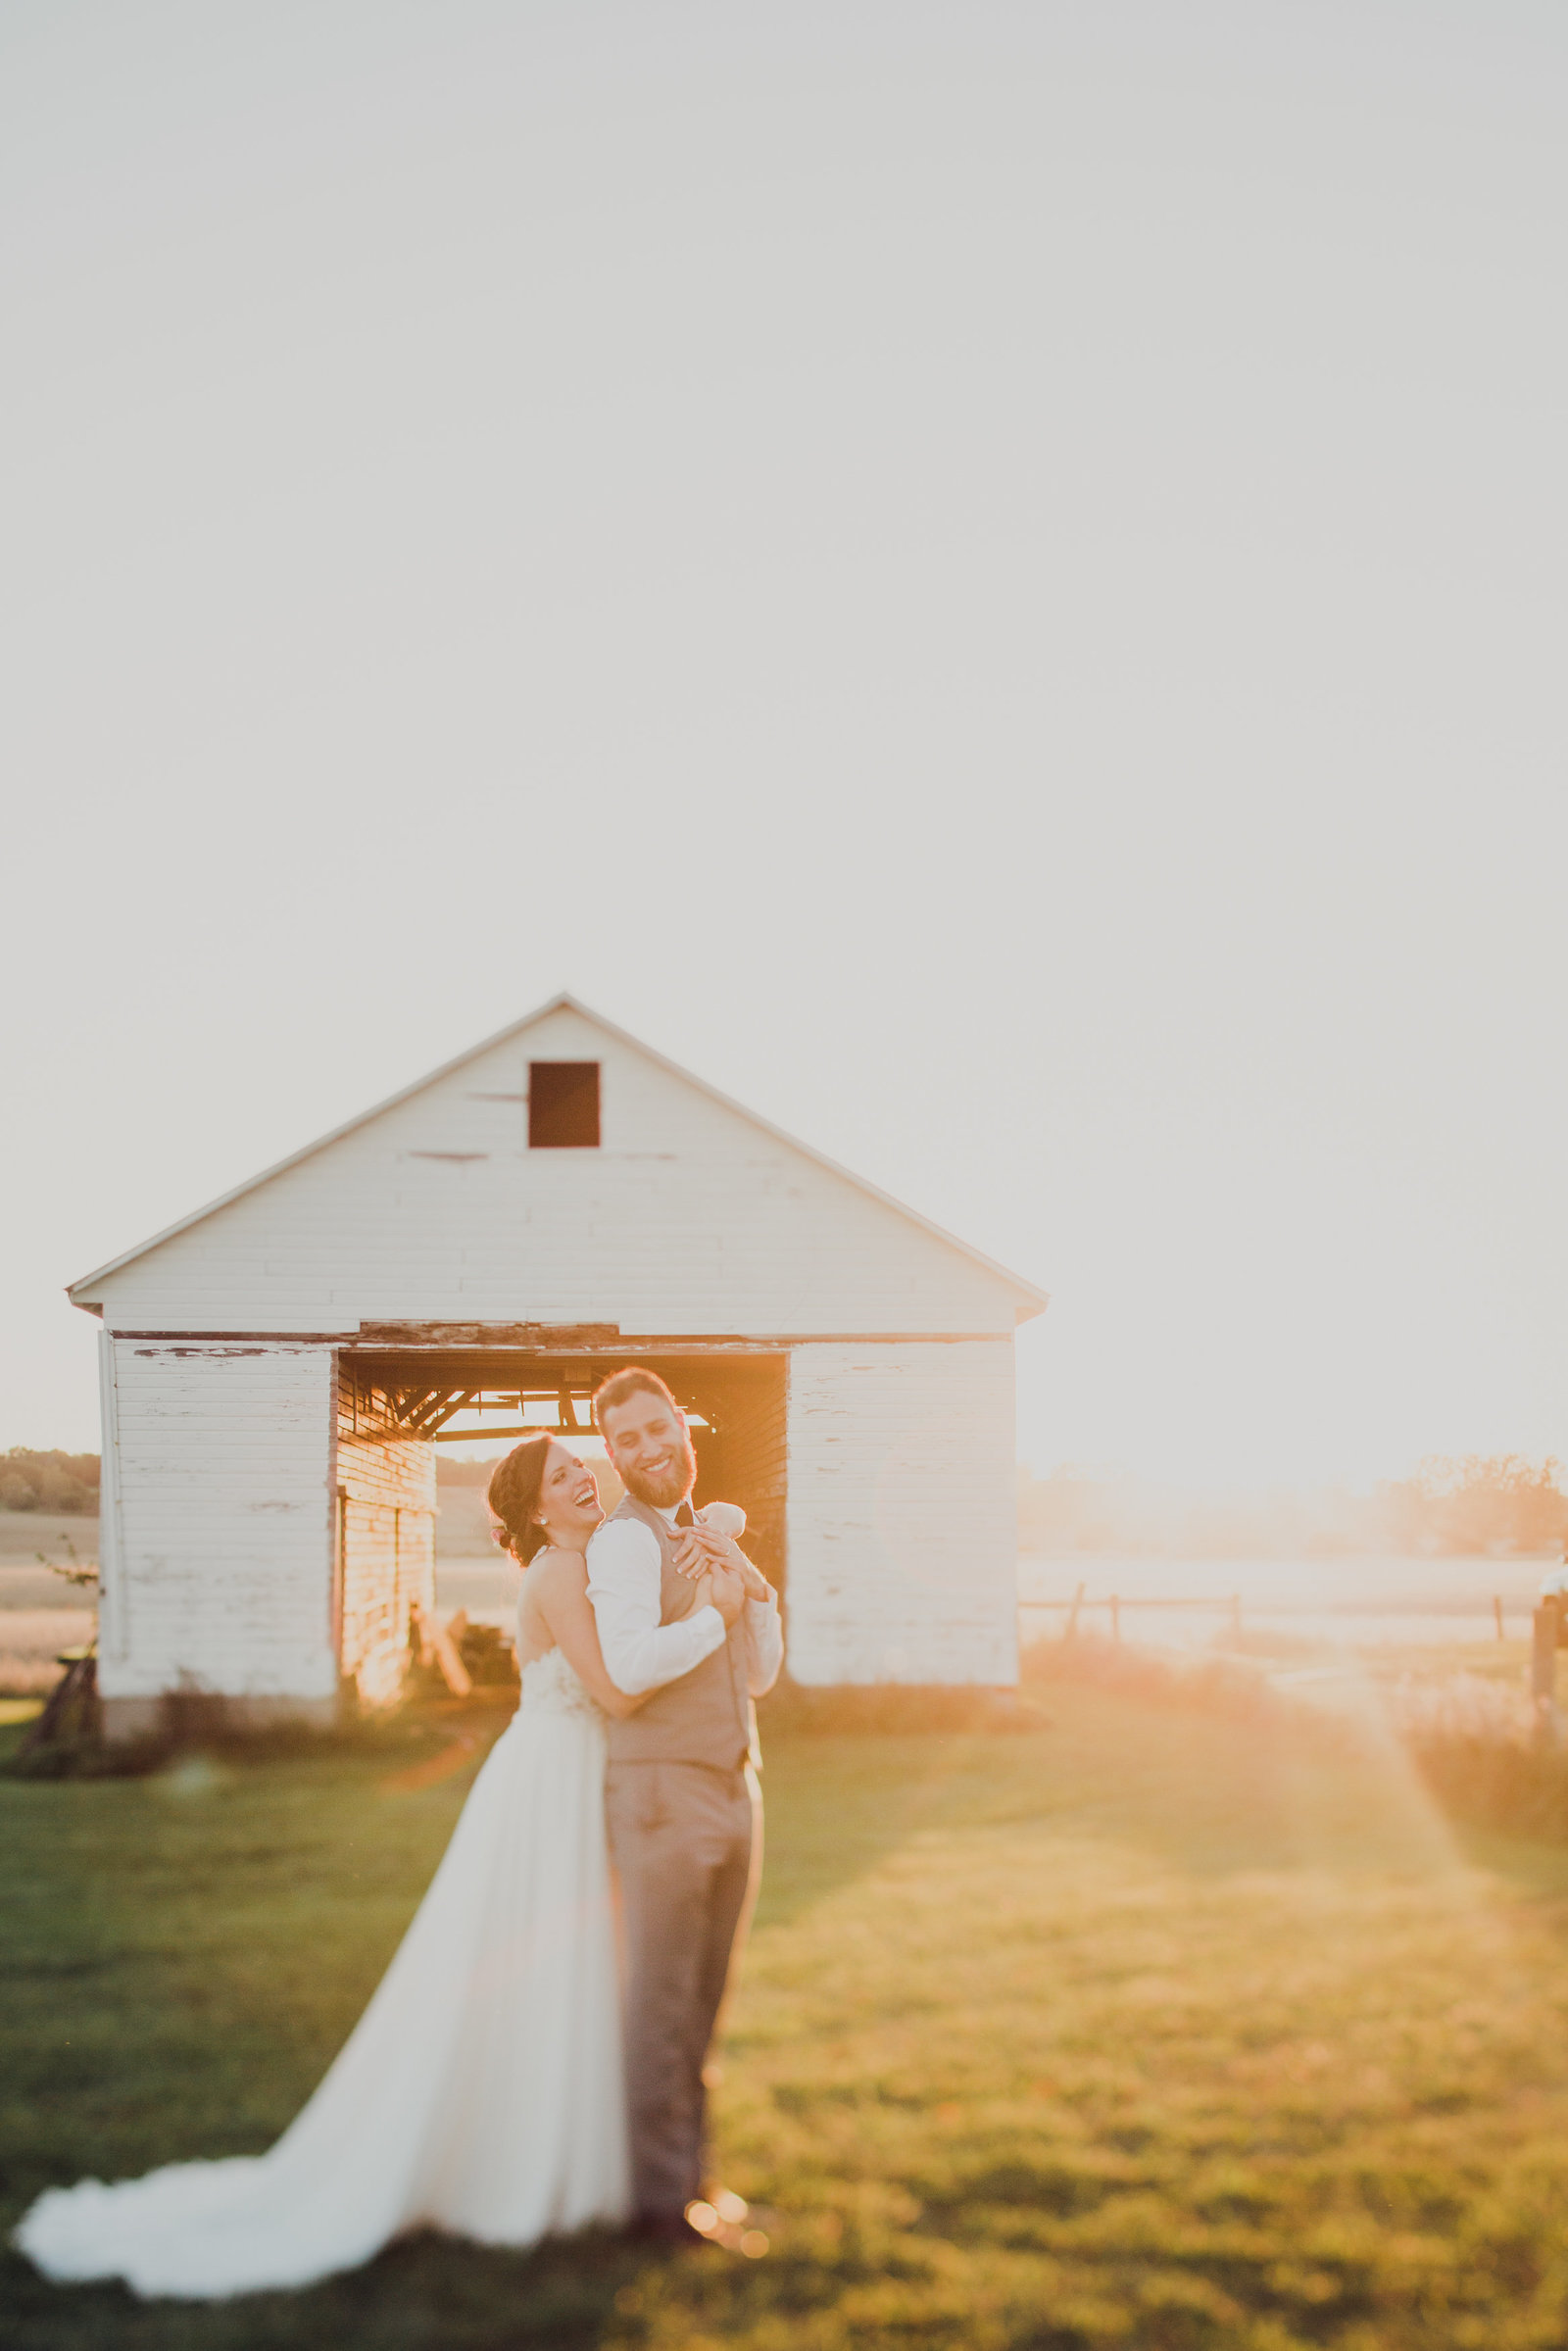 Erica Kay Photography - Laura & Shawn Wedding-538